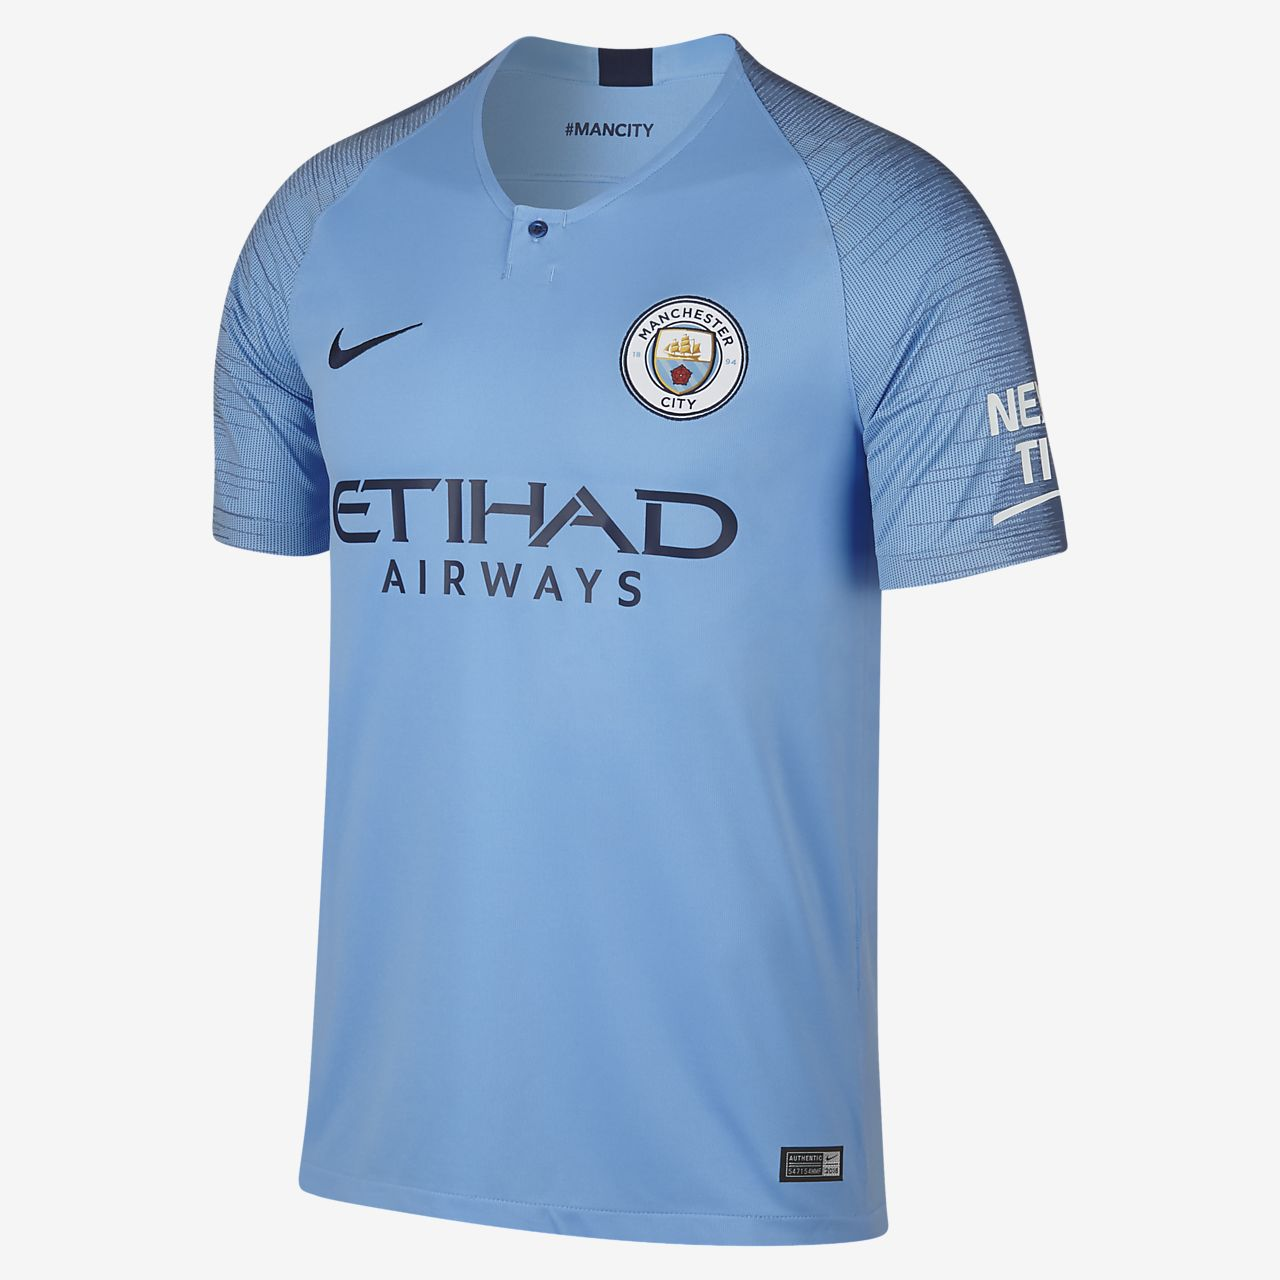 comprar camiseta Manchester City mujer